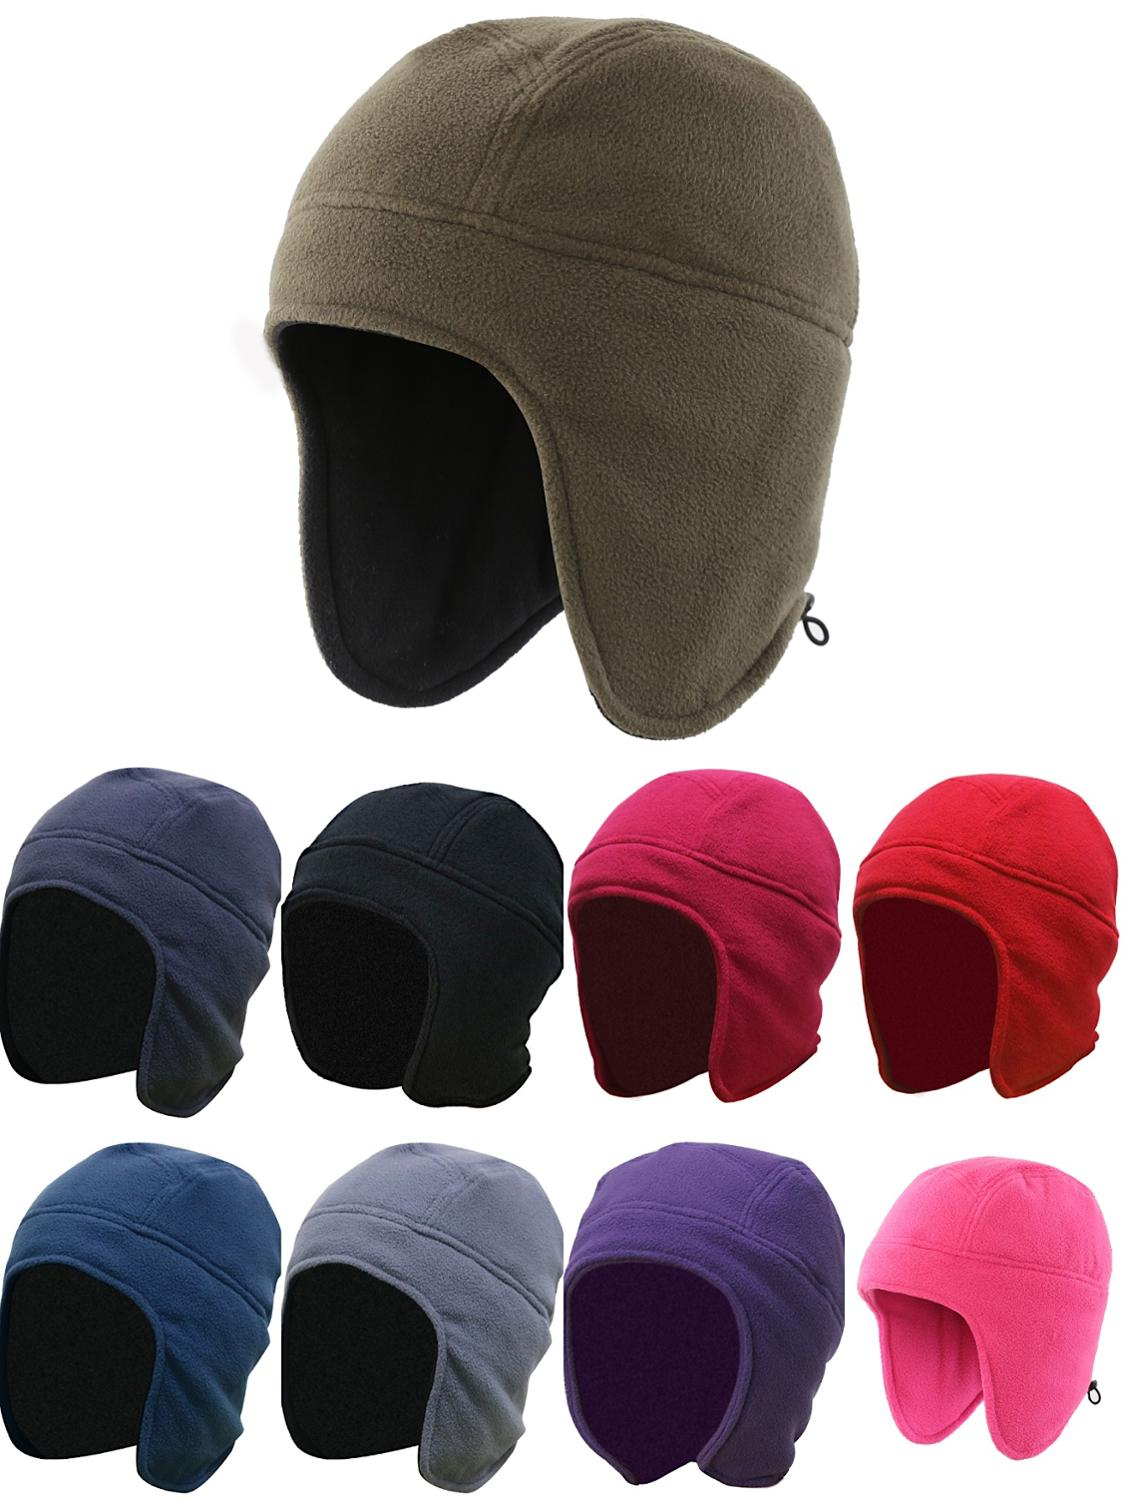 Connectyle Men's Womens Warm Fleece Beanie Earflap Winter Hat Outdoor Skull Caps